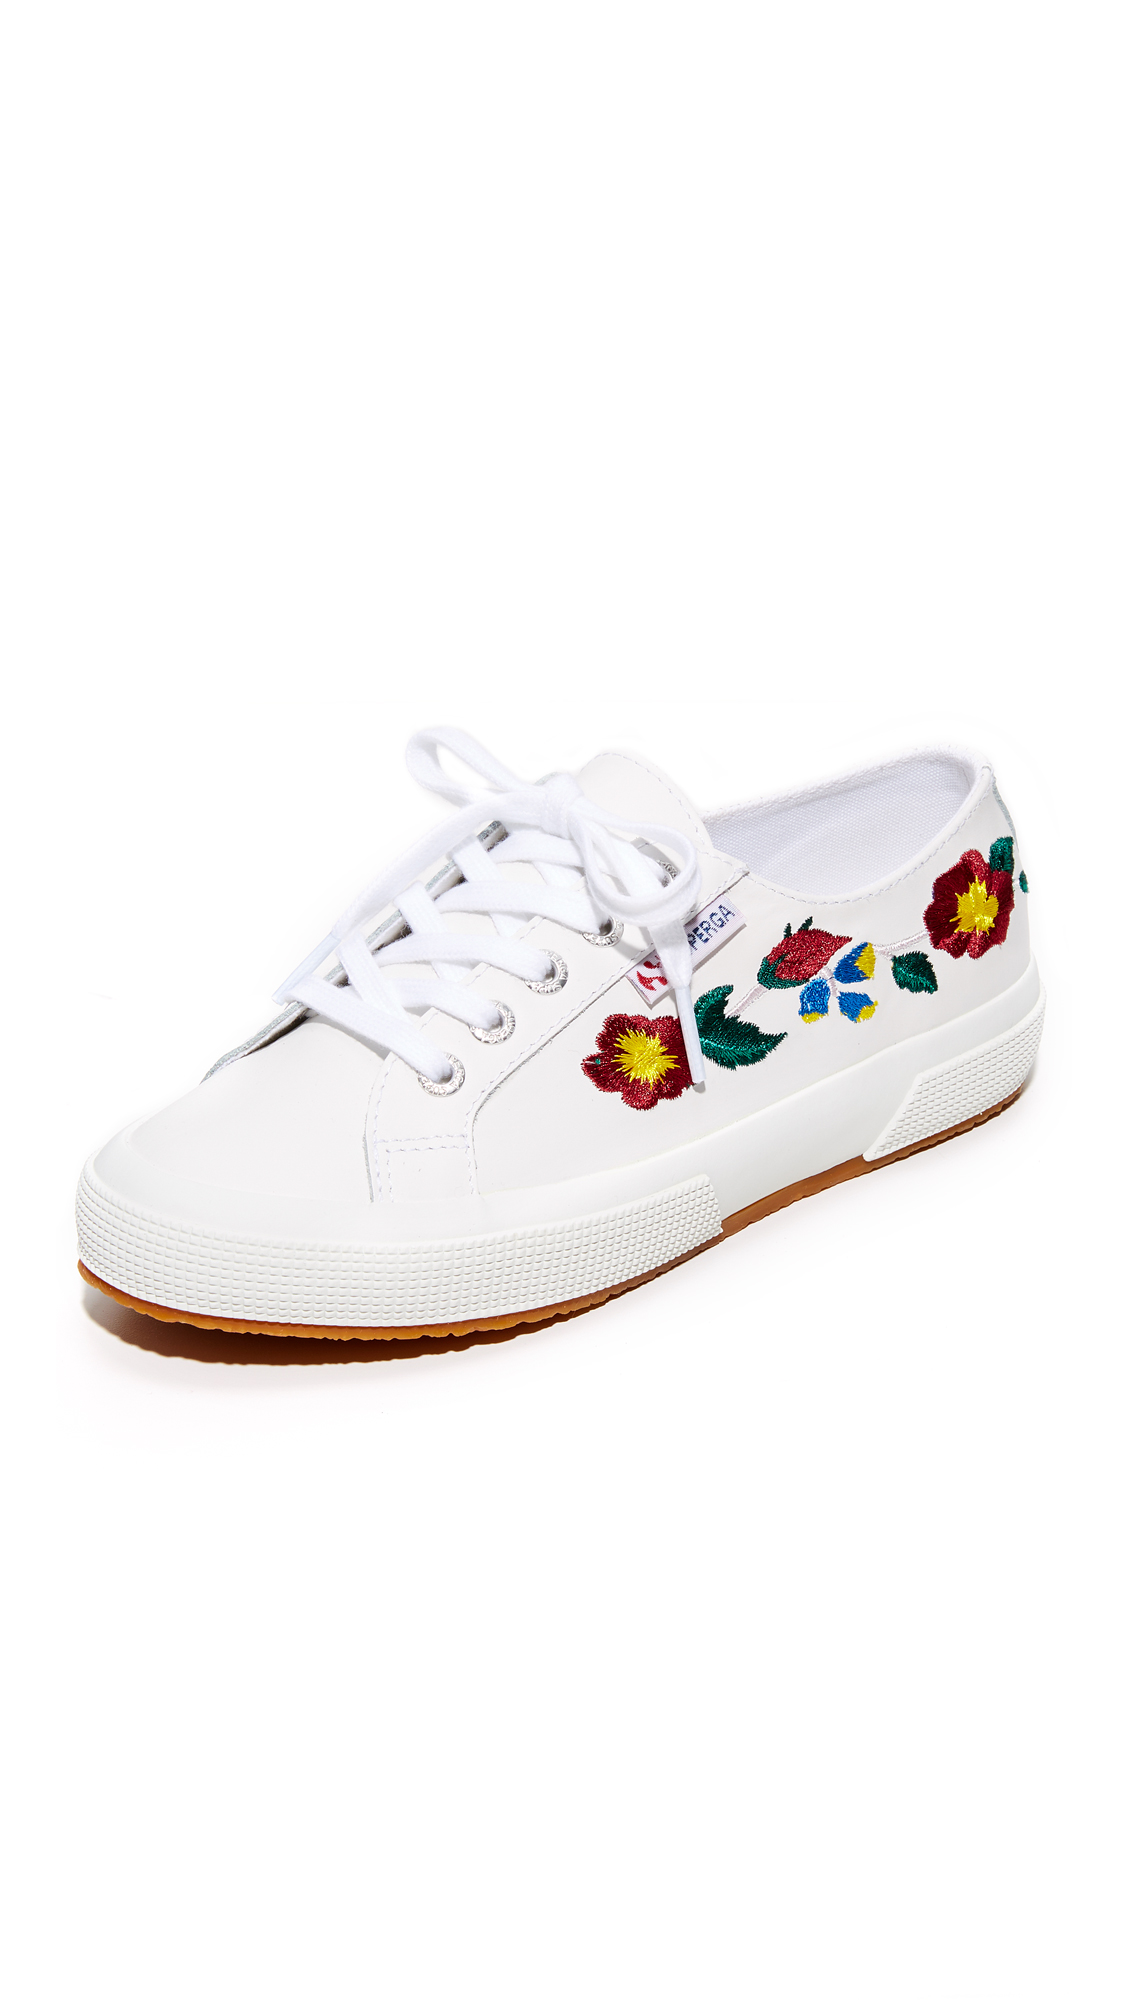 Superga 2750 Leather Embroidery Sneakers - White